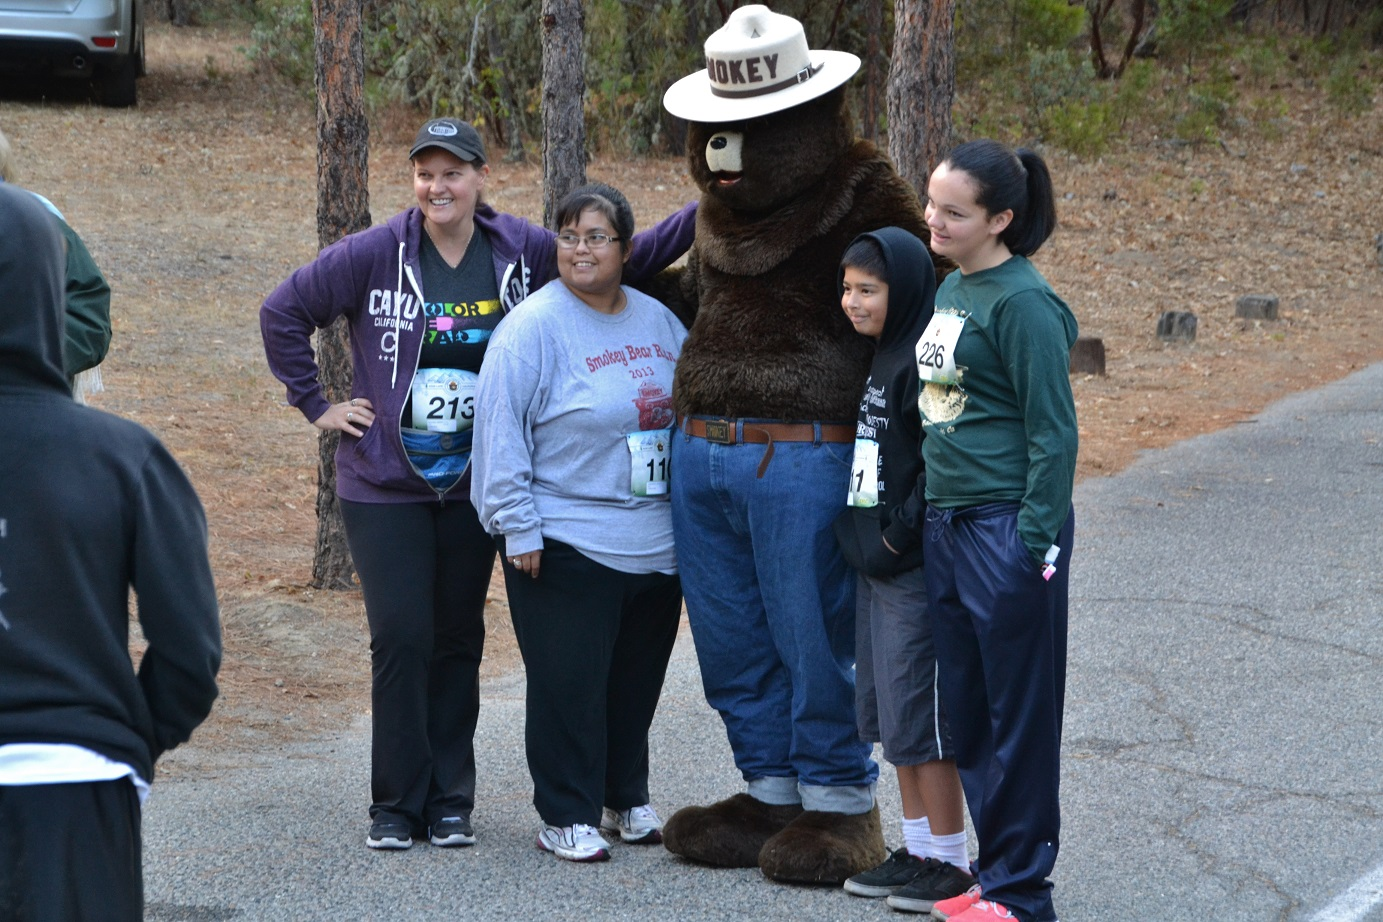 Posing for a photo with Smokey - photo by Gina Clugston